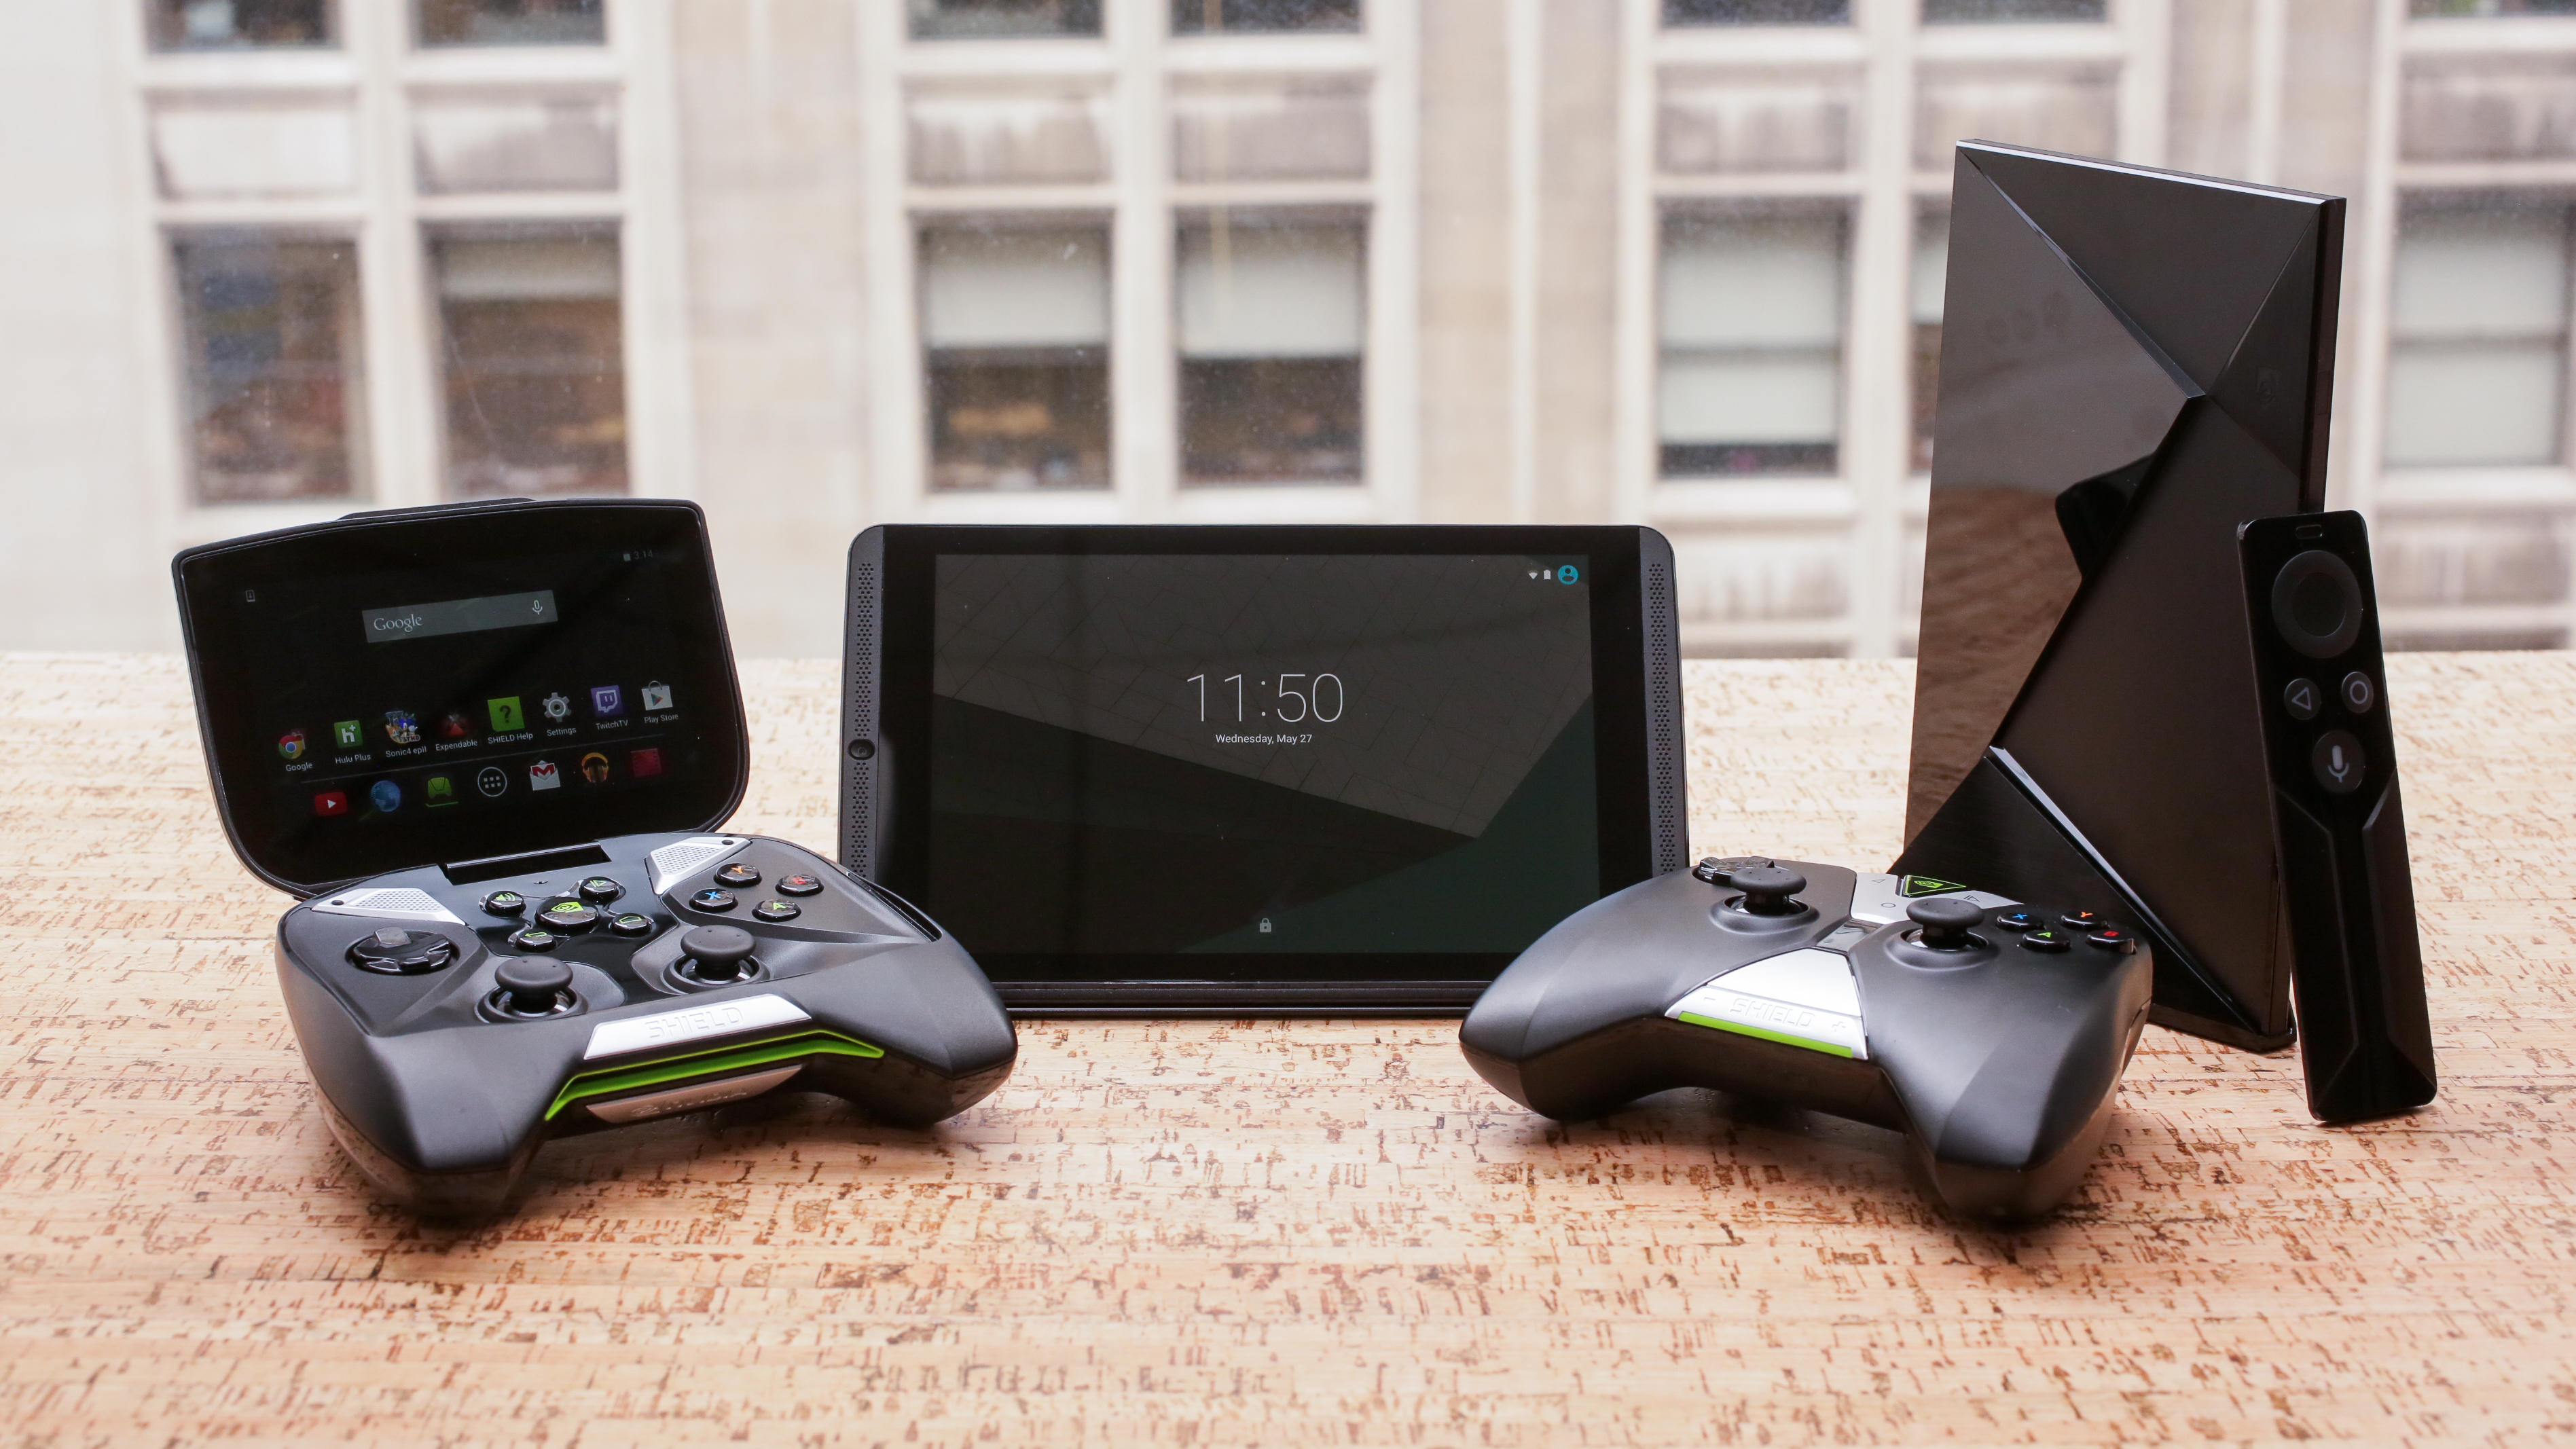 nvidia-shield-android-tv-2015-21.jpg